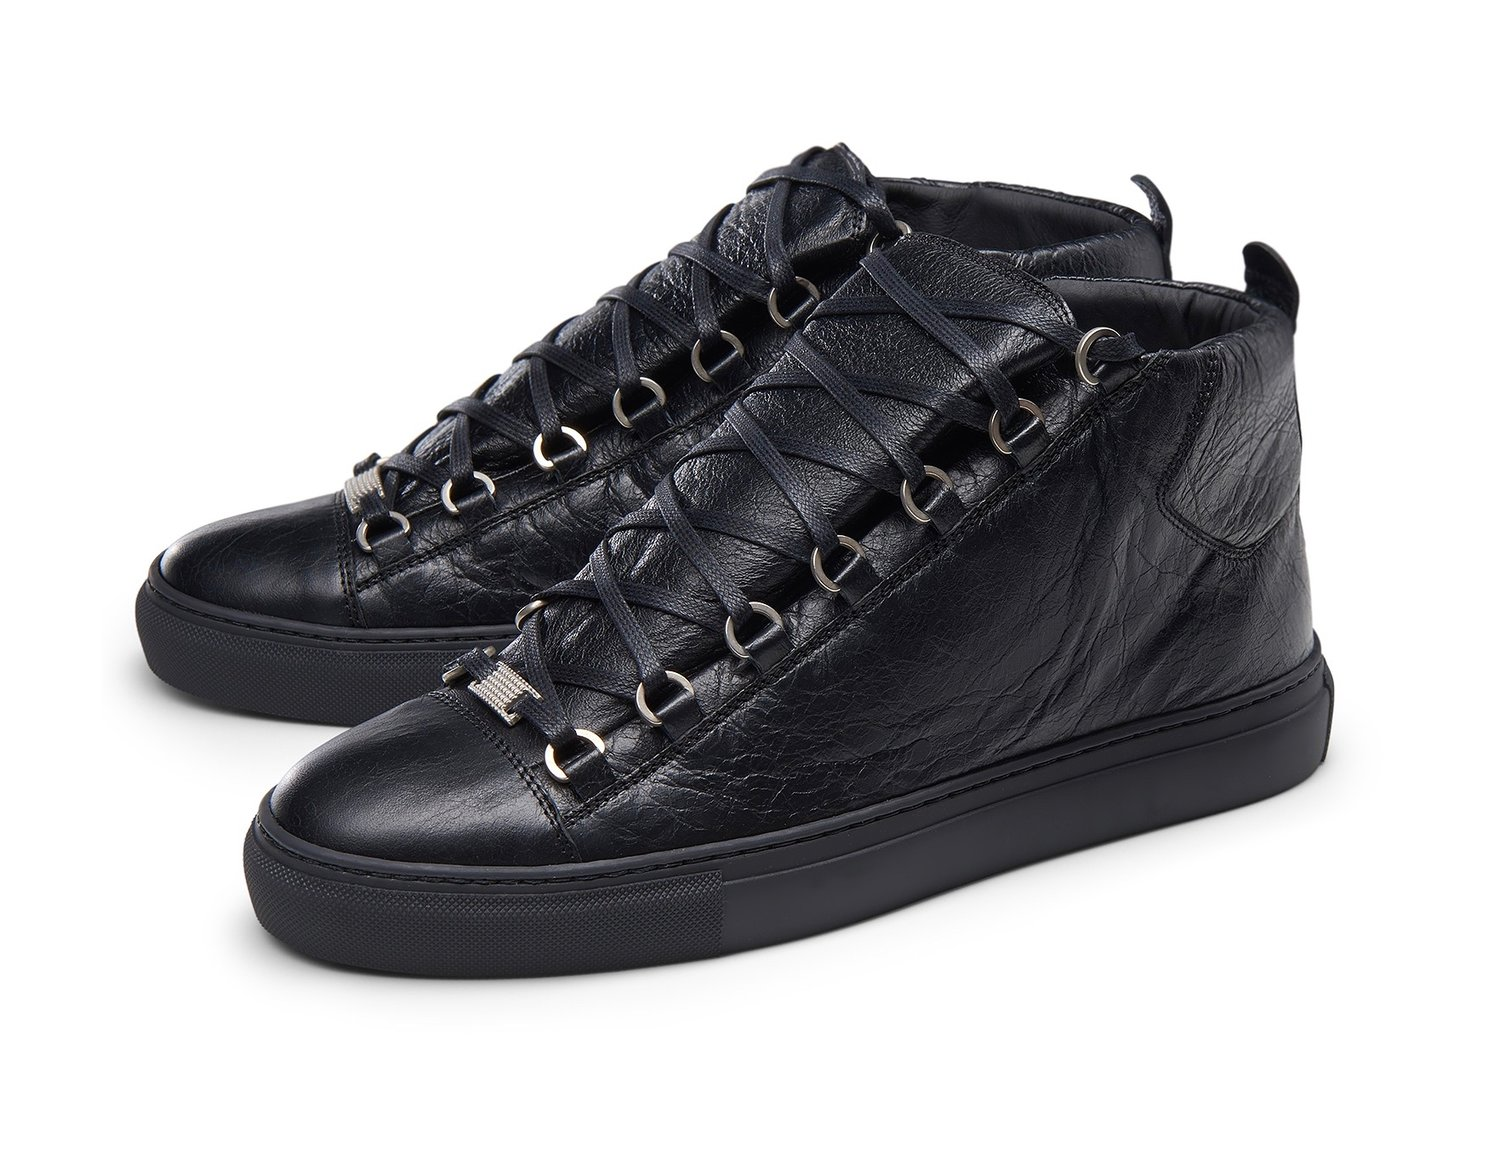 233f172b3ad9d On Sale  Balenciaga Arena Leather High